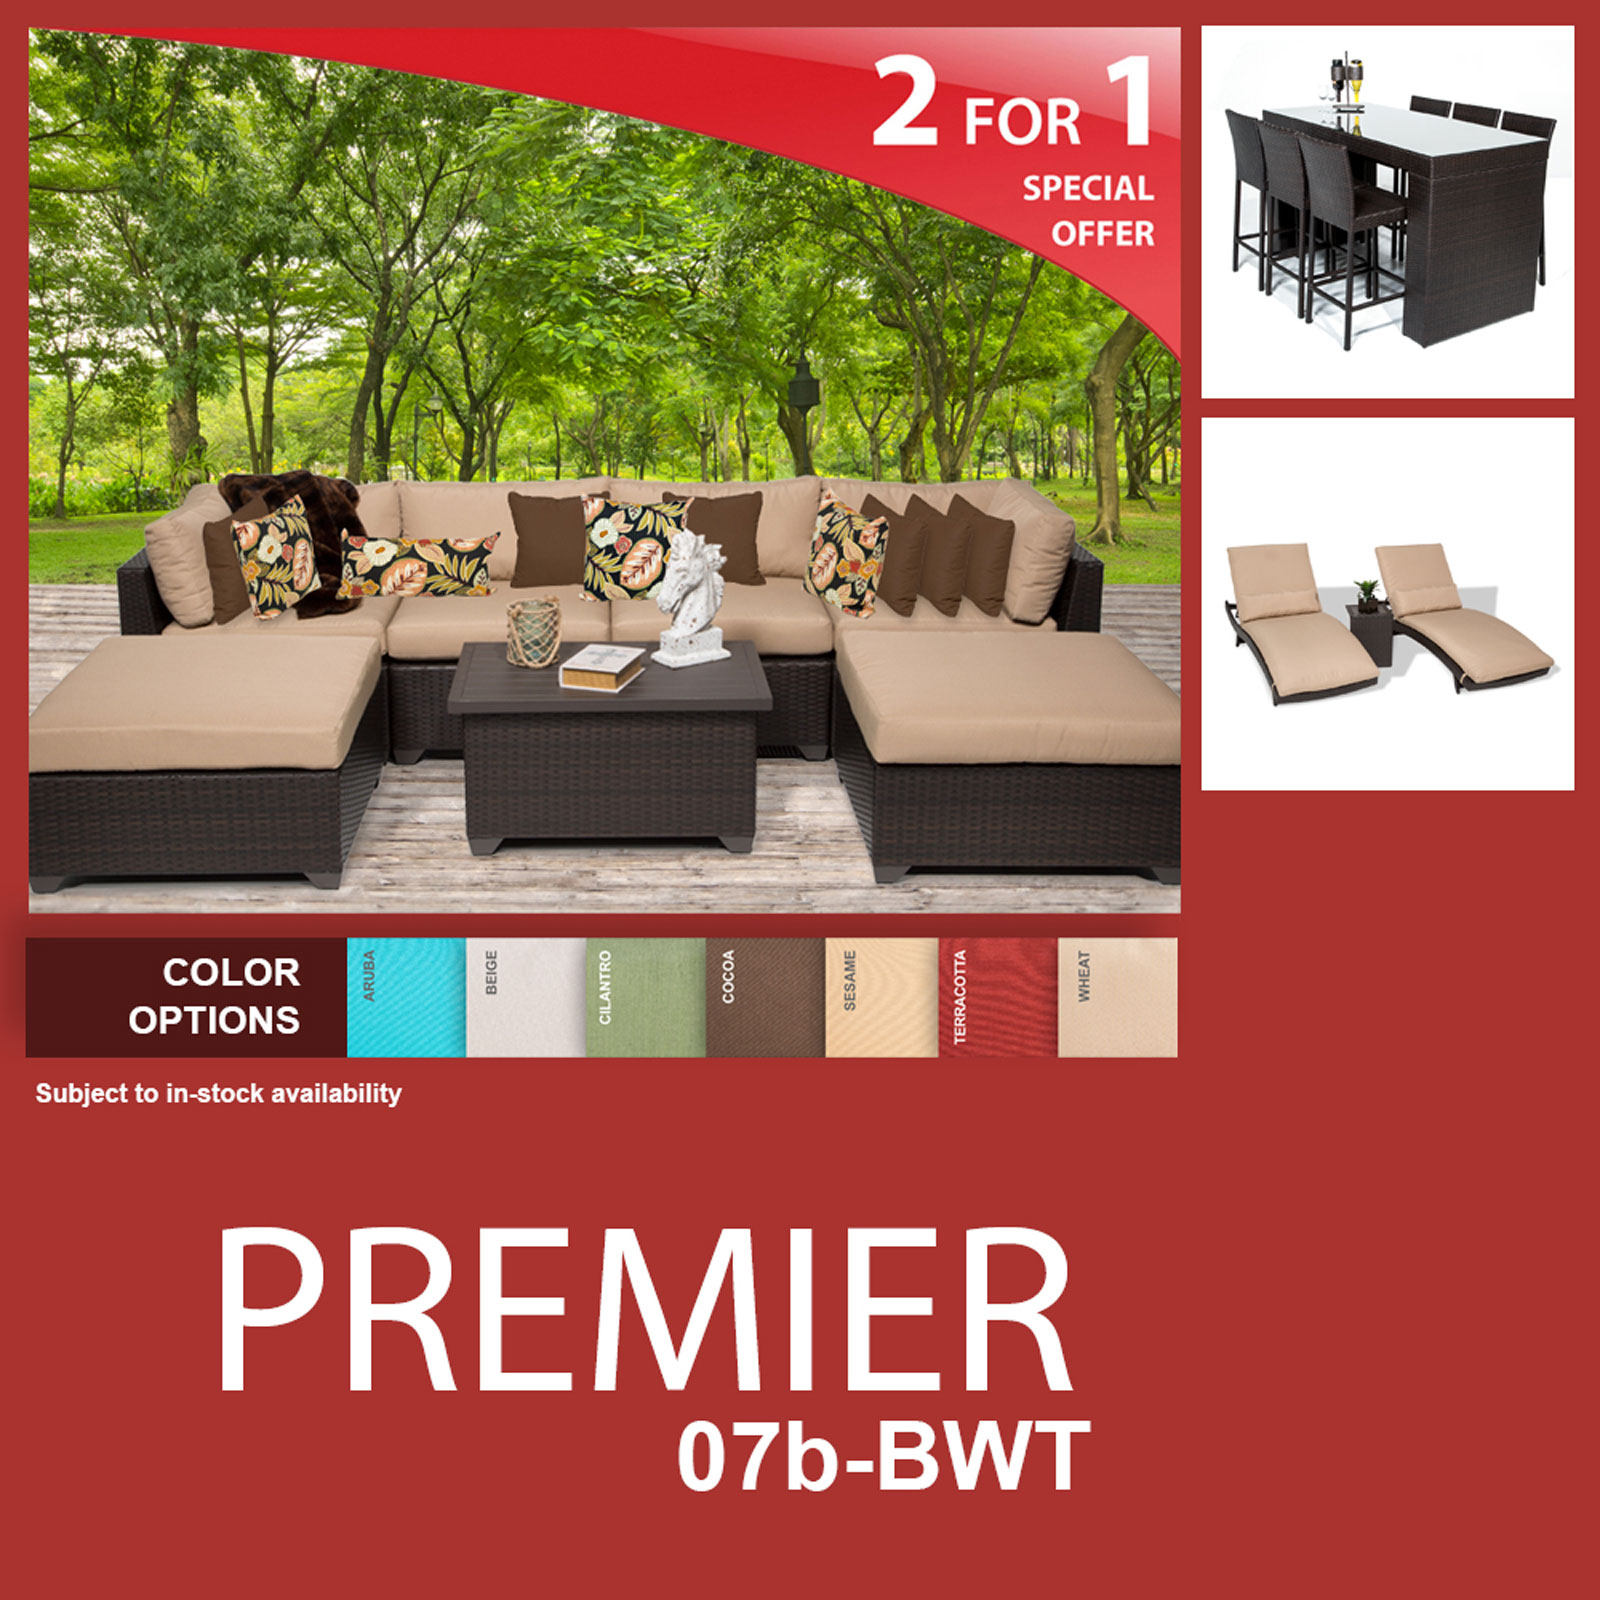 Premier 17 Piece Outdoor Wicker Patio Furniture Package PREMIER-07b-BWT